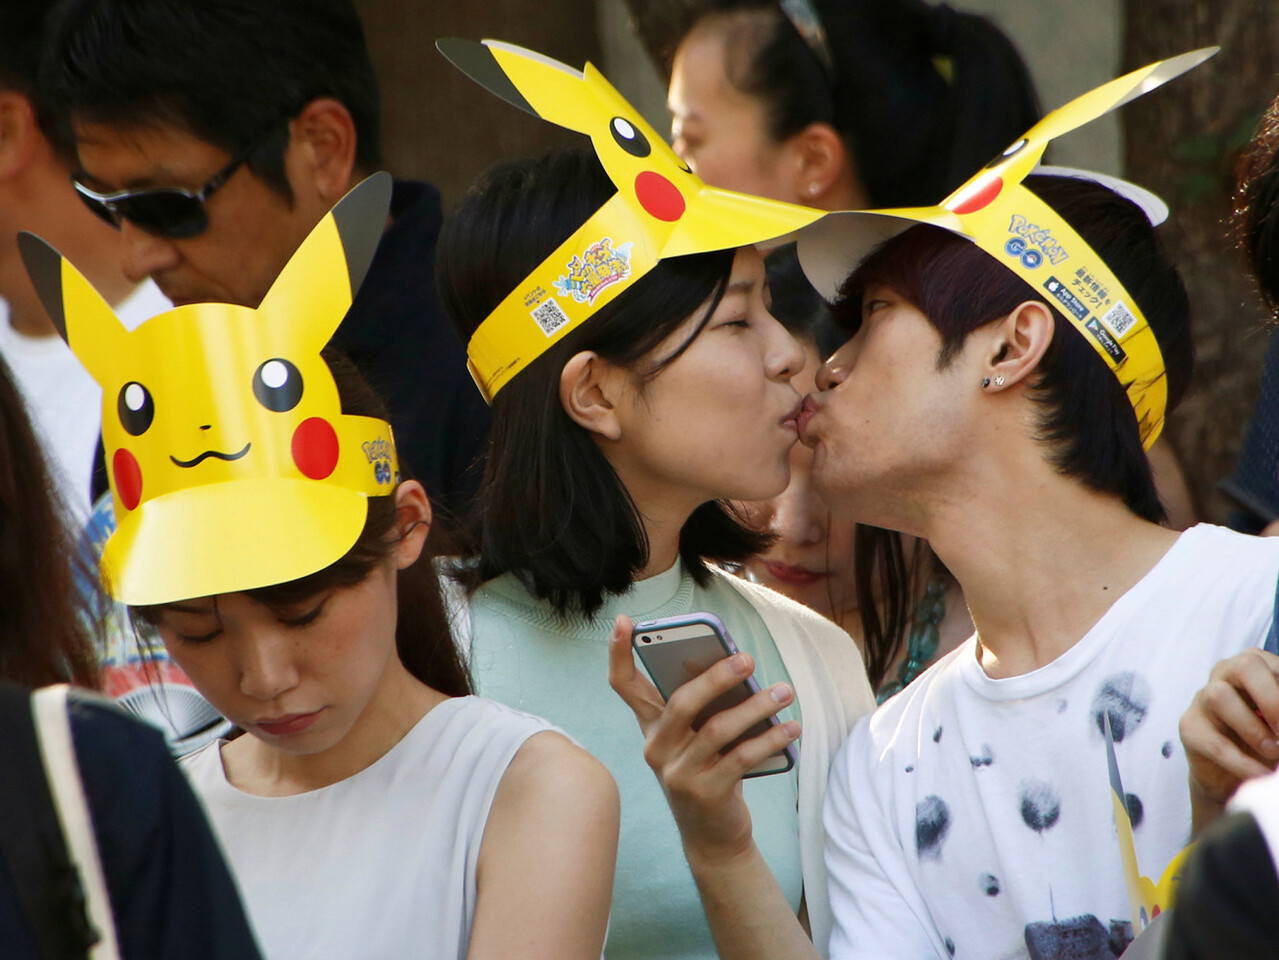 A couple kisses as they wait for start of a parade by Pokemon characters in Yokohama, Japan, August 7, 2016. REUTERS/Kim Kyung-Hoon